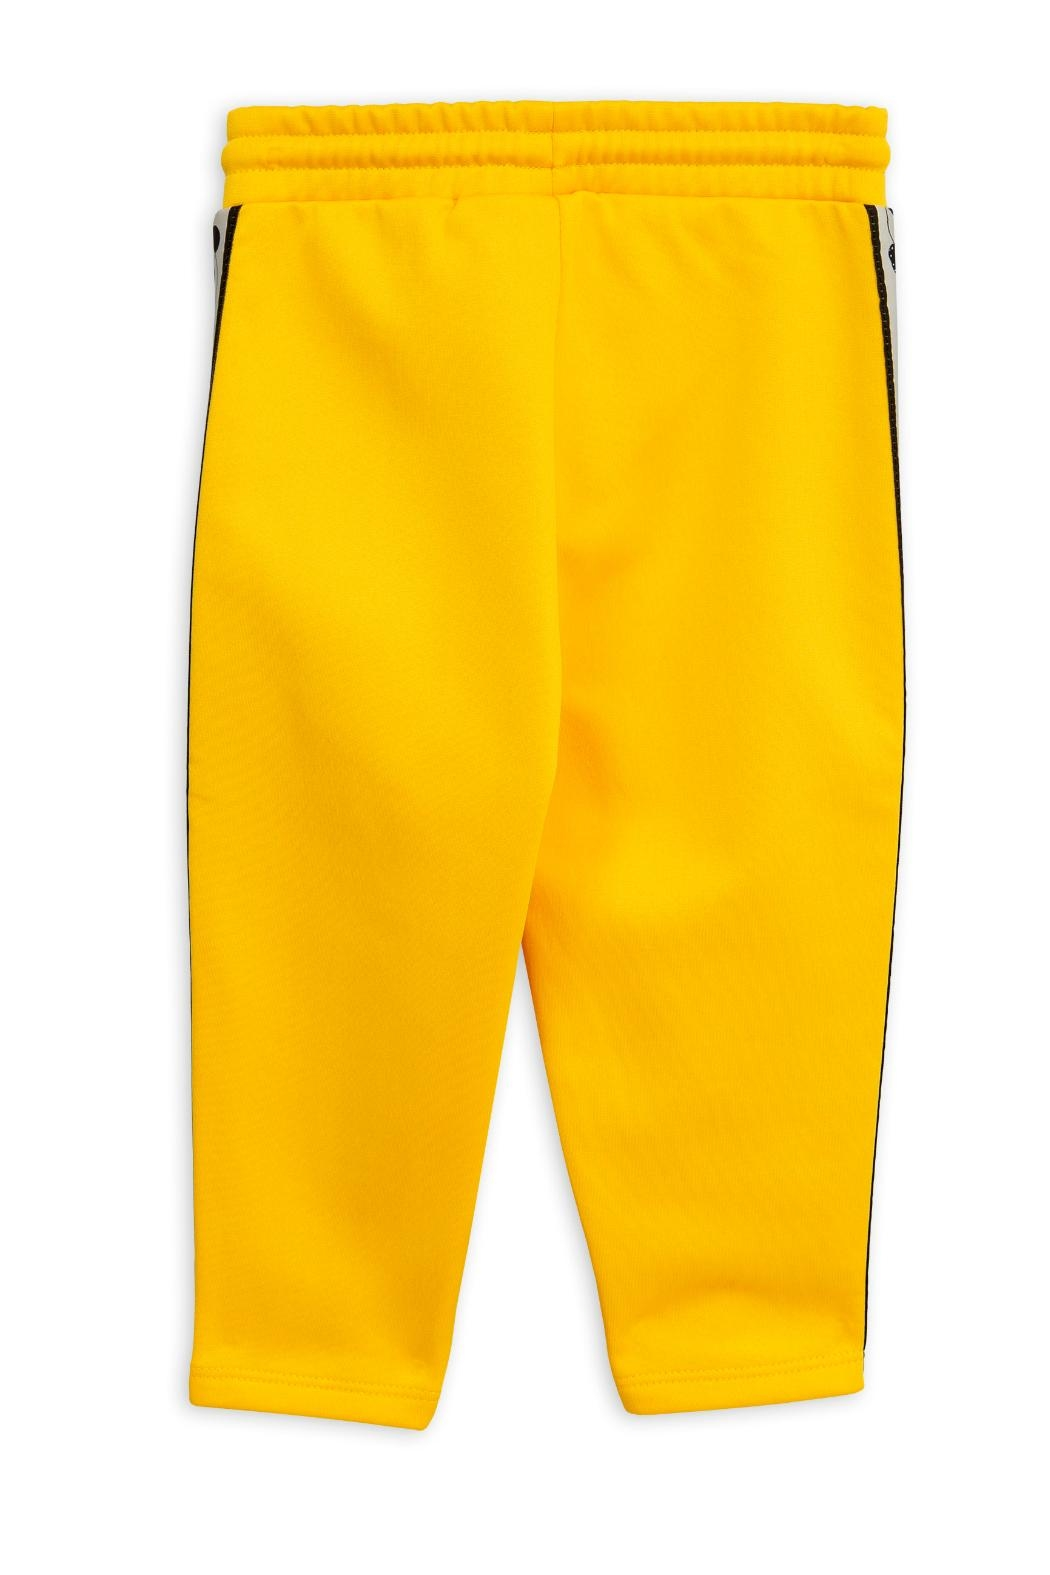 Mini Rodini Yellow Panda Pants - Side Cropped Image